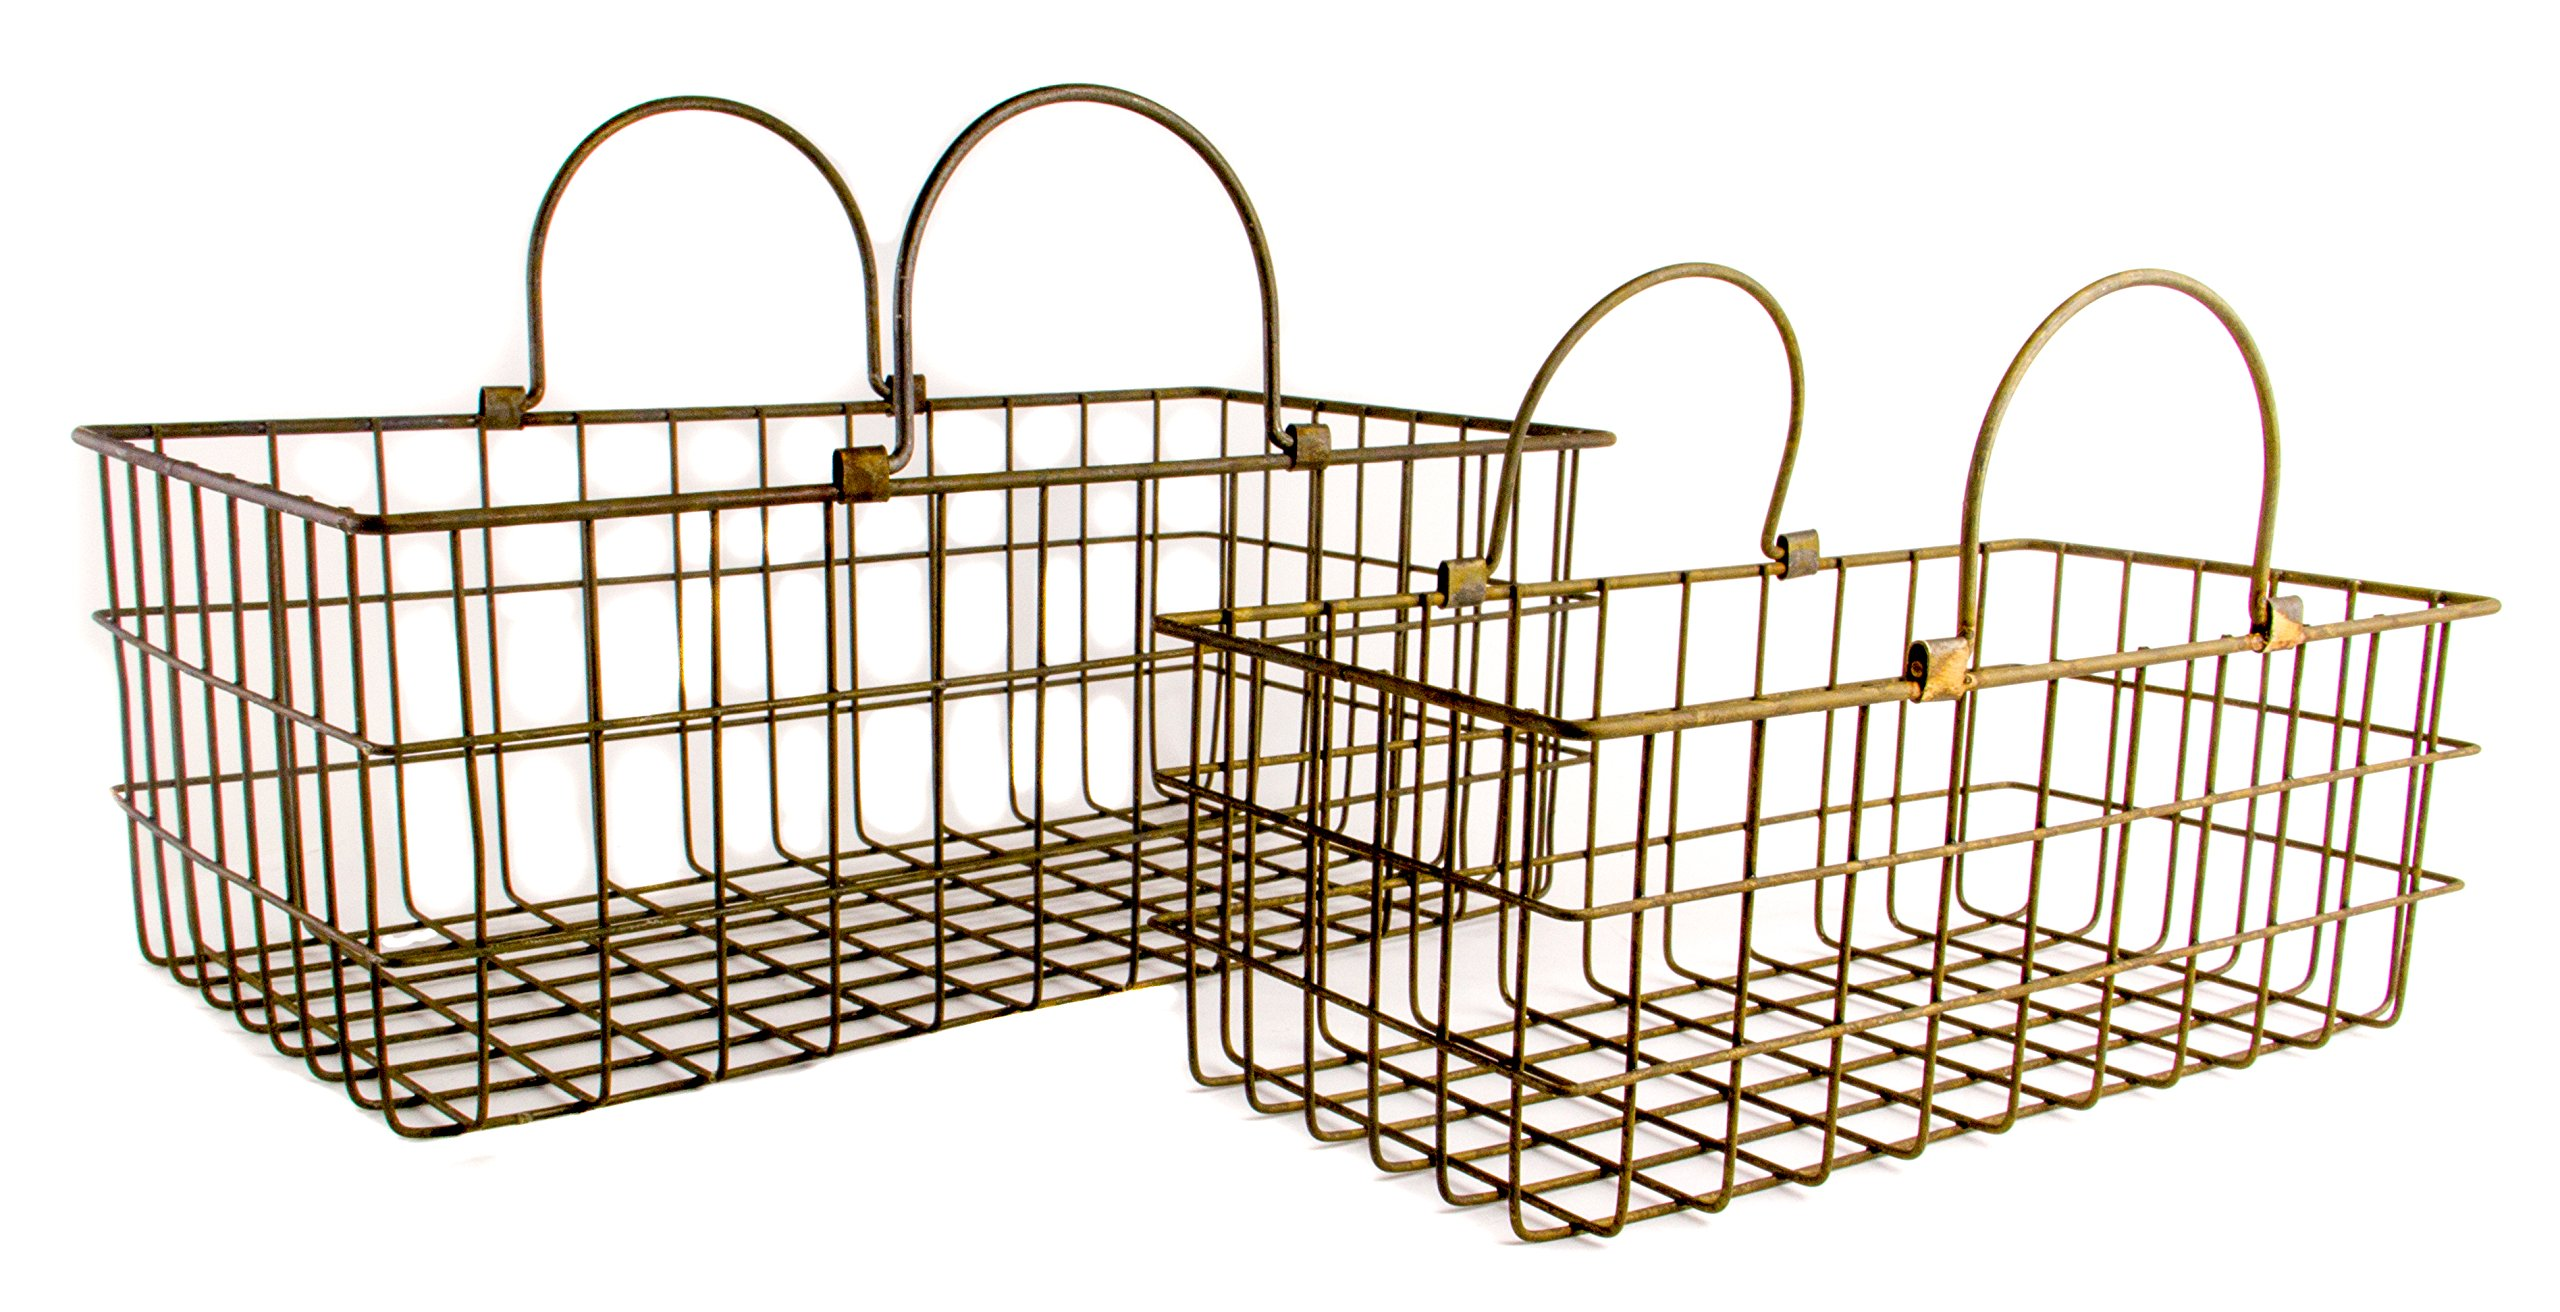 Rectangular Metal Country Style Basket with Handles, Set of 2 - Small and Large